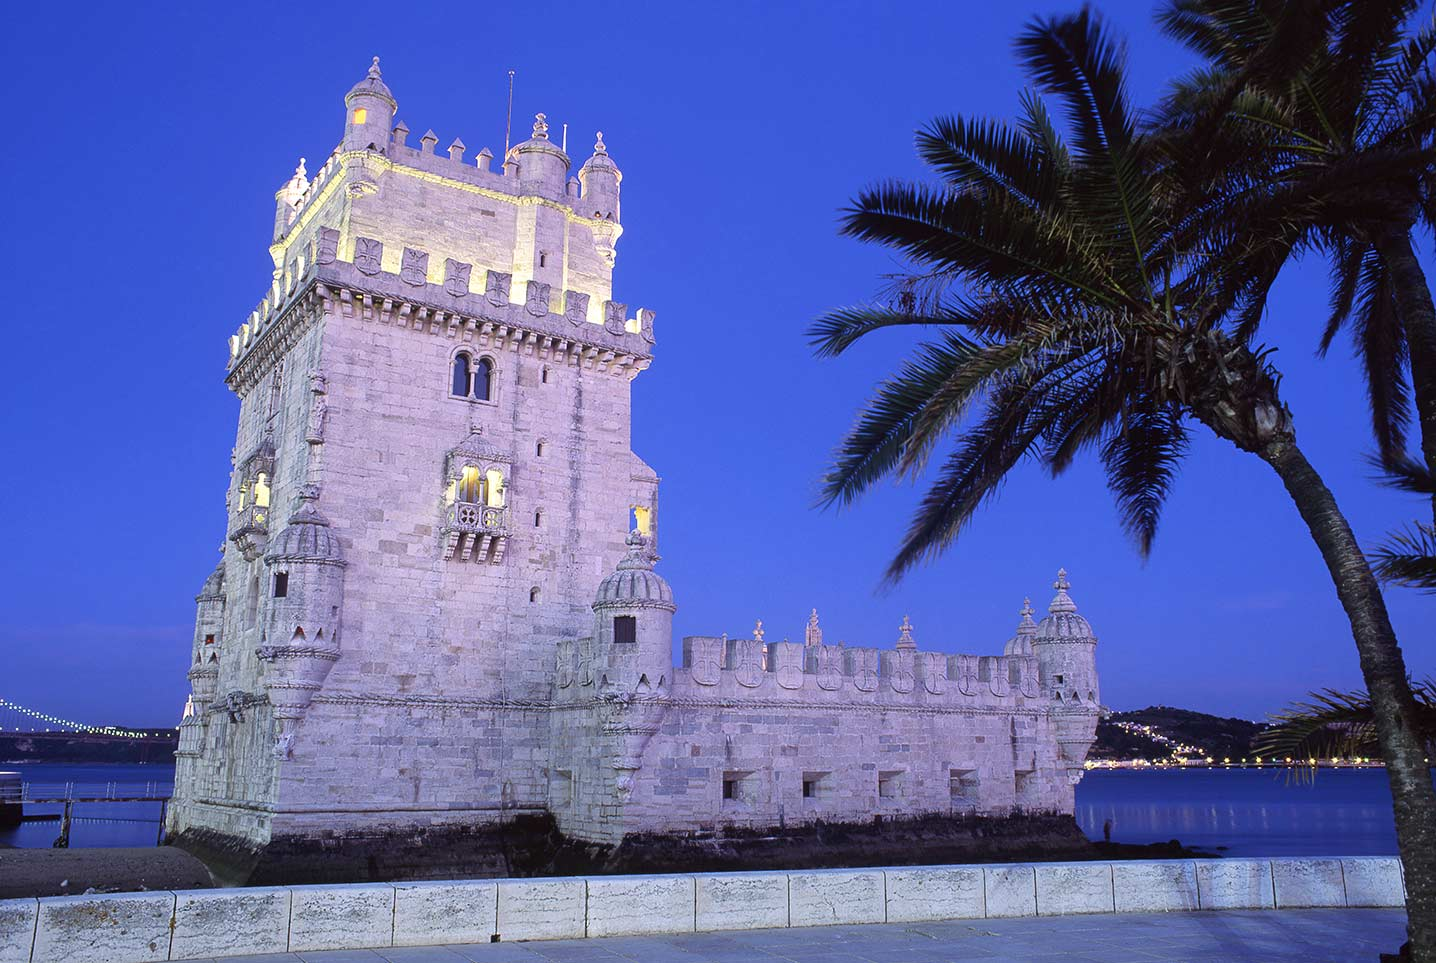 Image of the Belem Tower and River Tagus at night, Lisbon